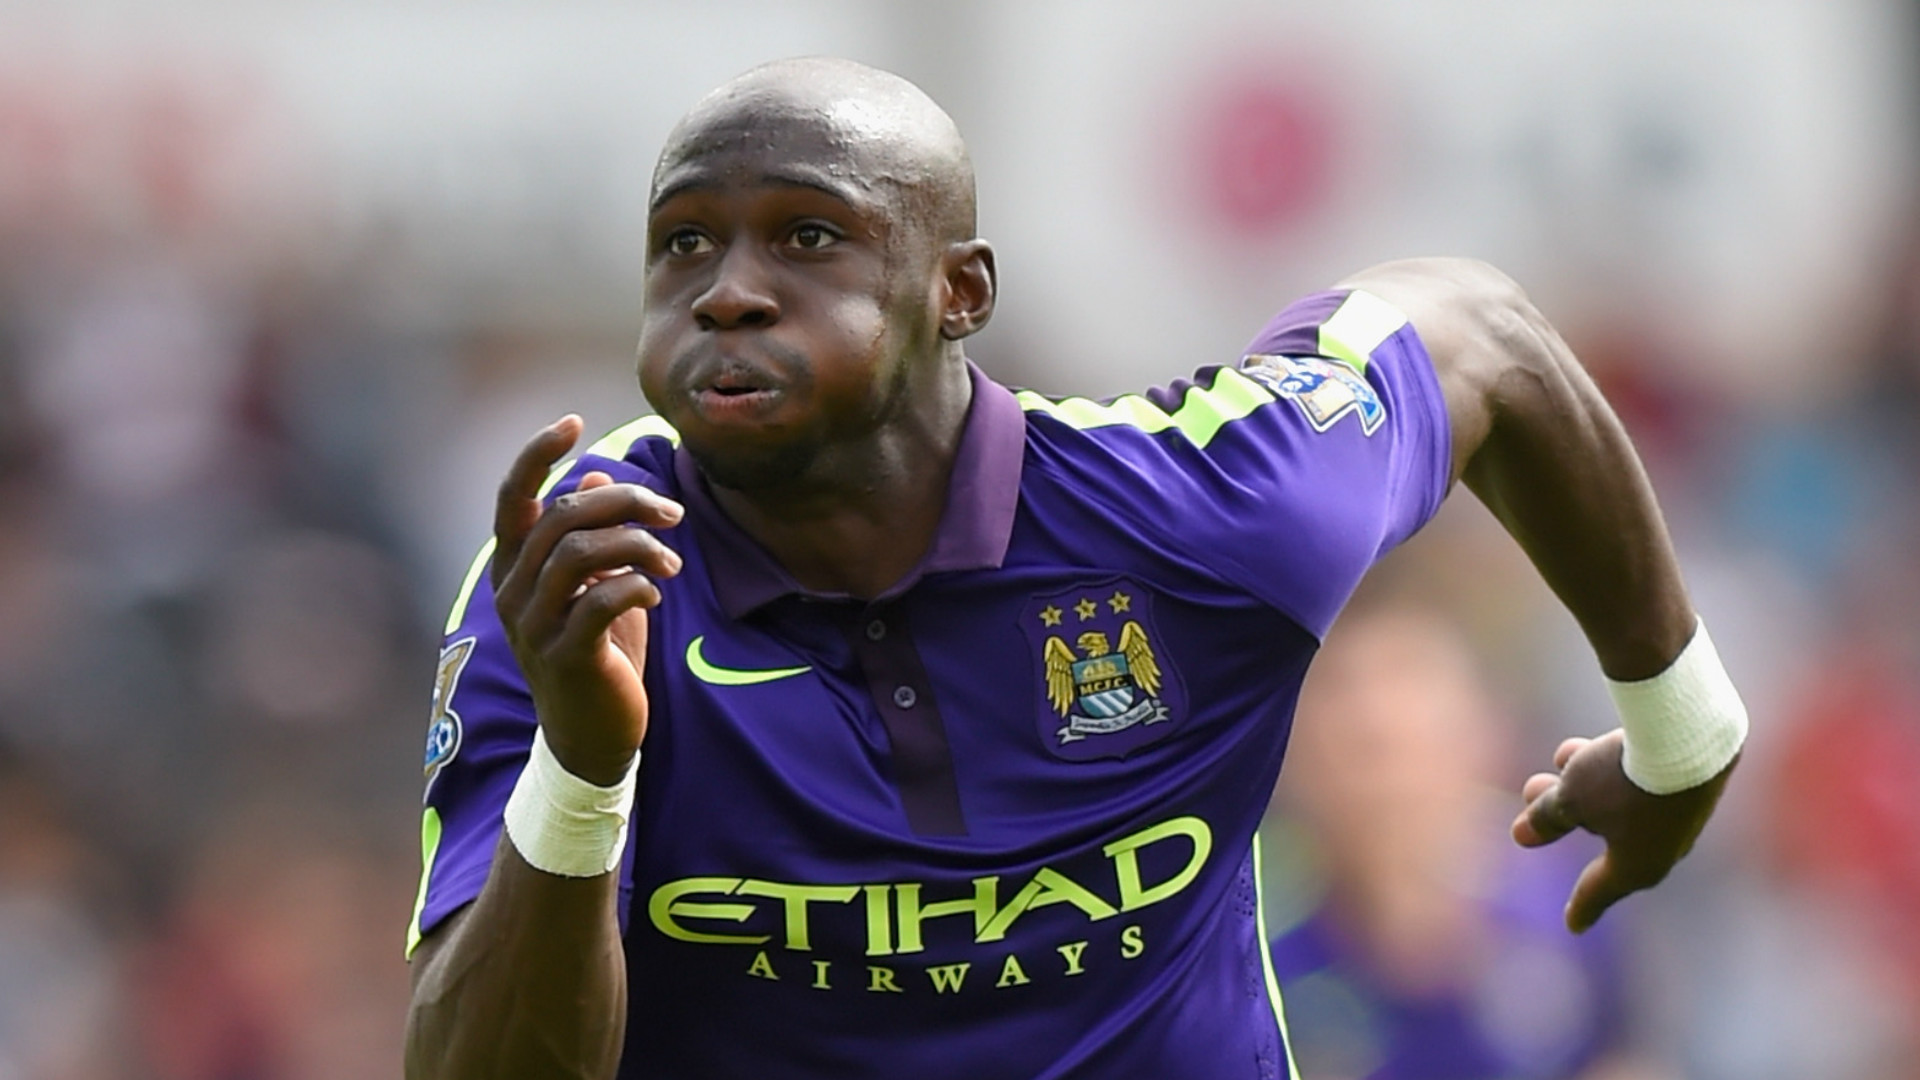 eliaquim mangala manchester city 127wi9omvgrdv1wbo5ejxotp2j - ROUND-UP of 30/1/2018 TRANSFER NEWS, DONE DEALS AND RUMOURS